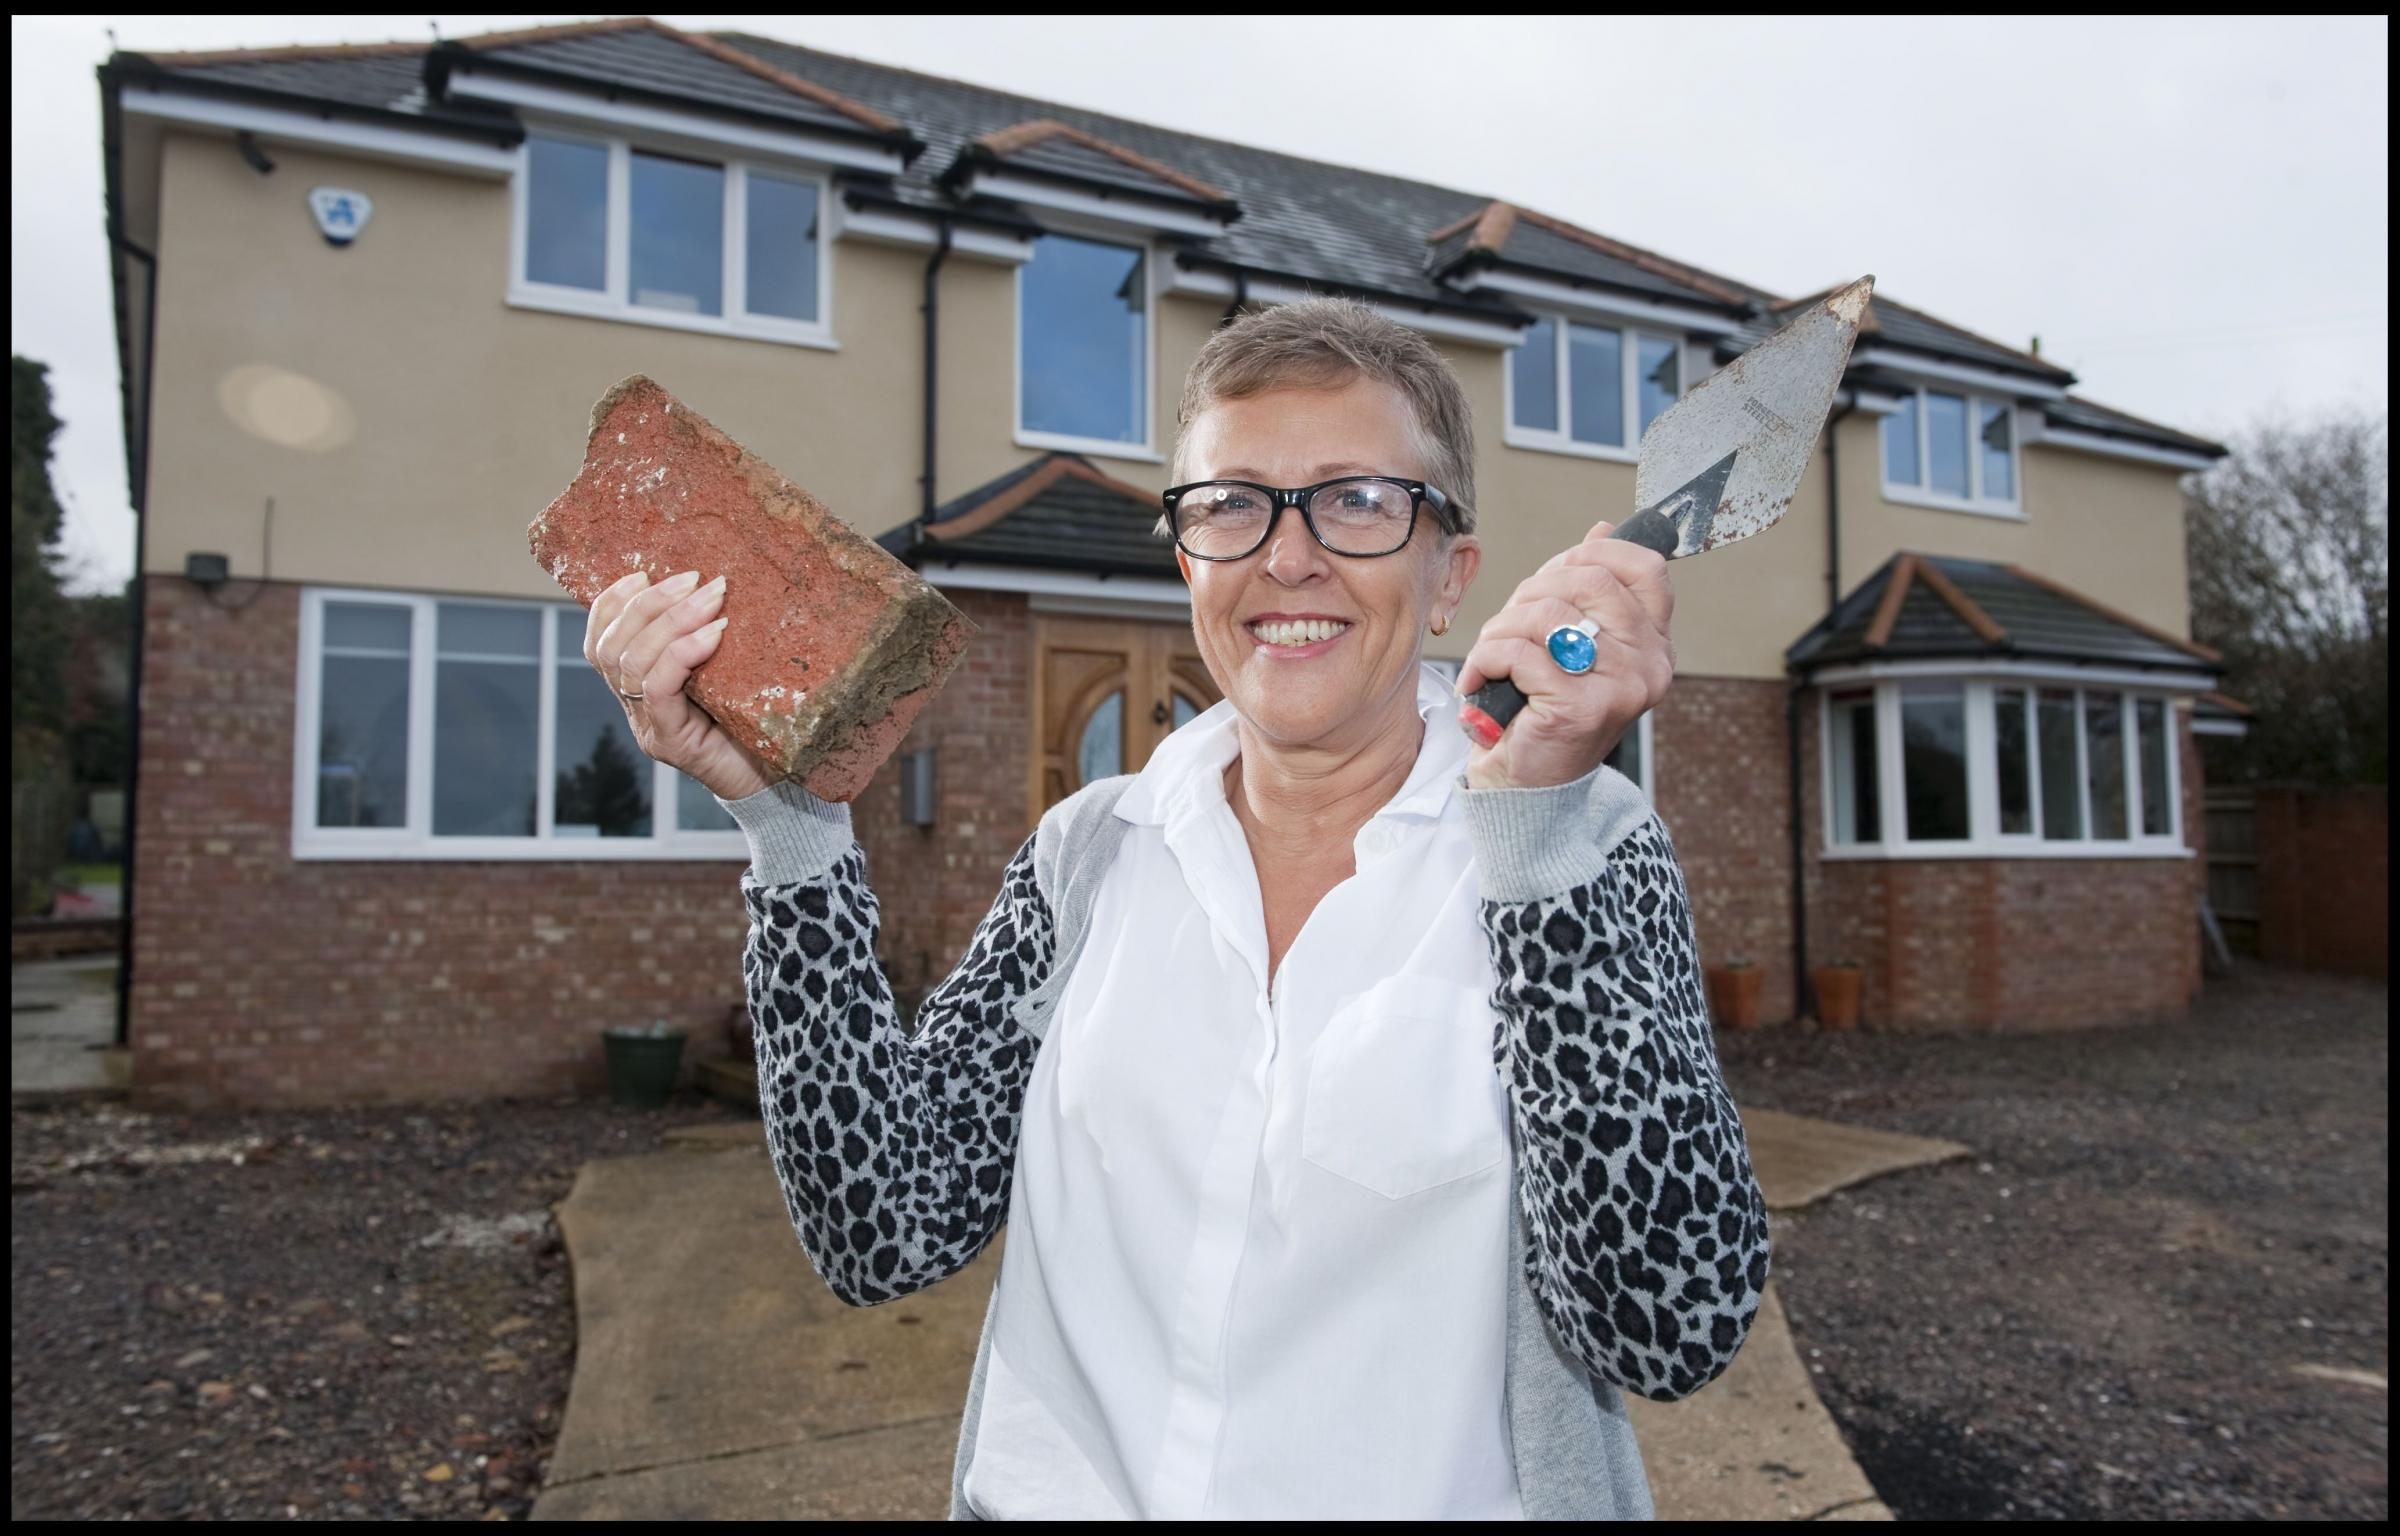 Kempshott woman built her own home after builders botched the job